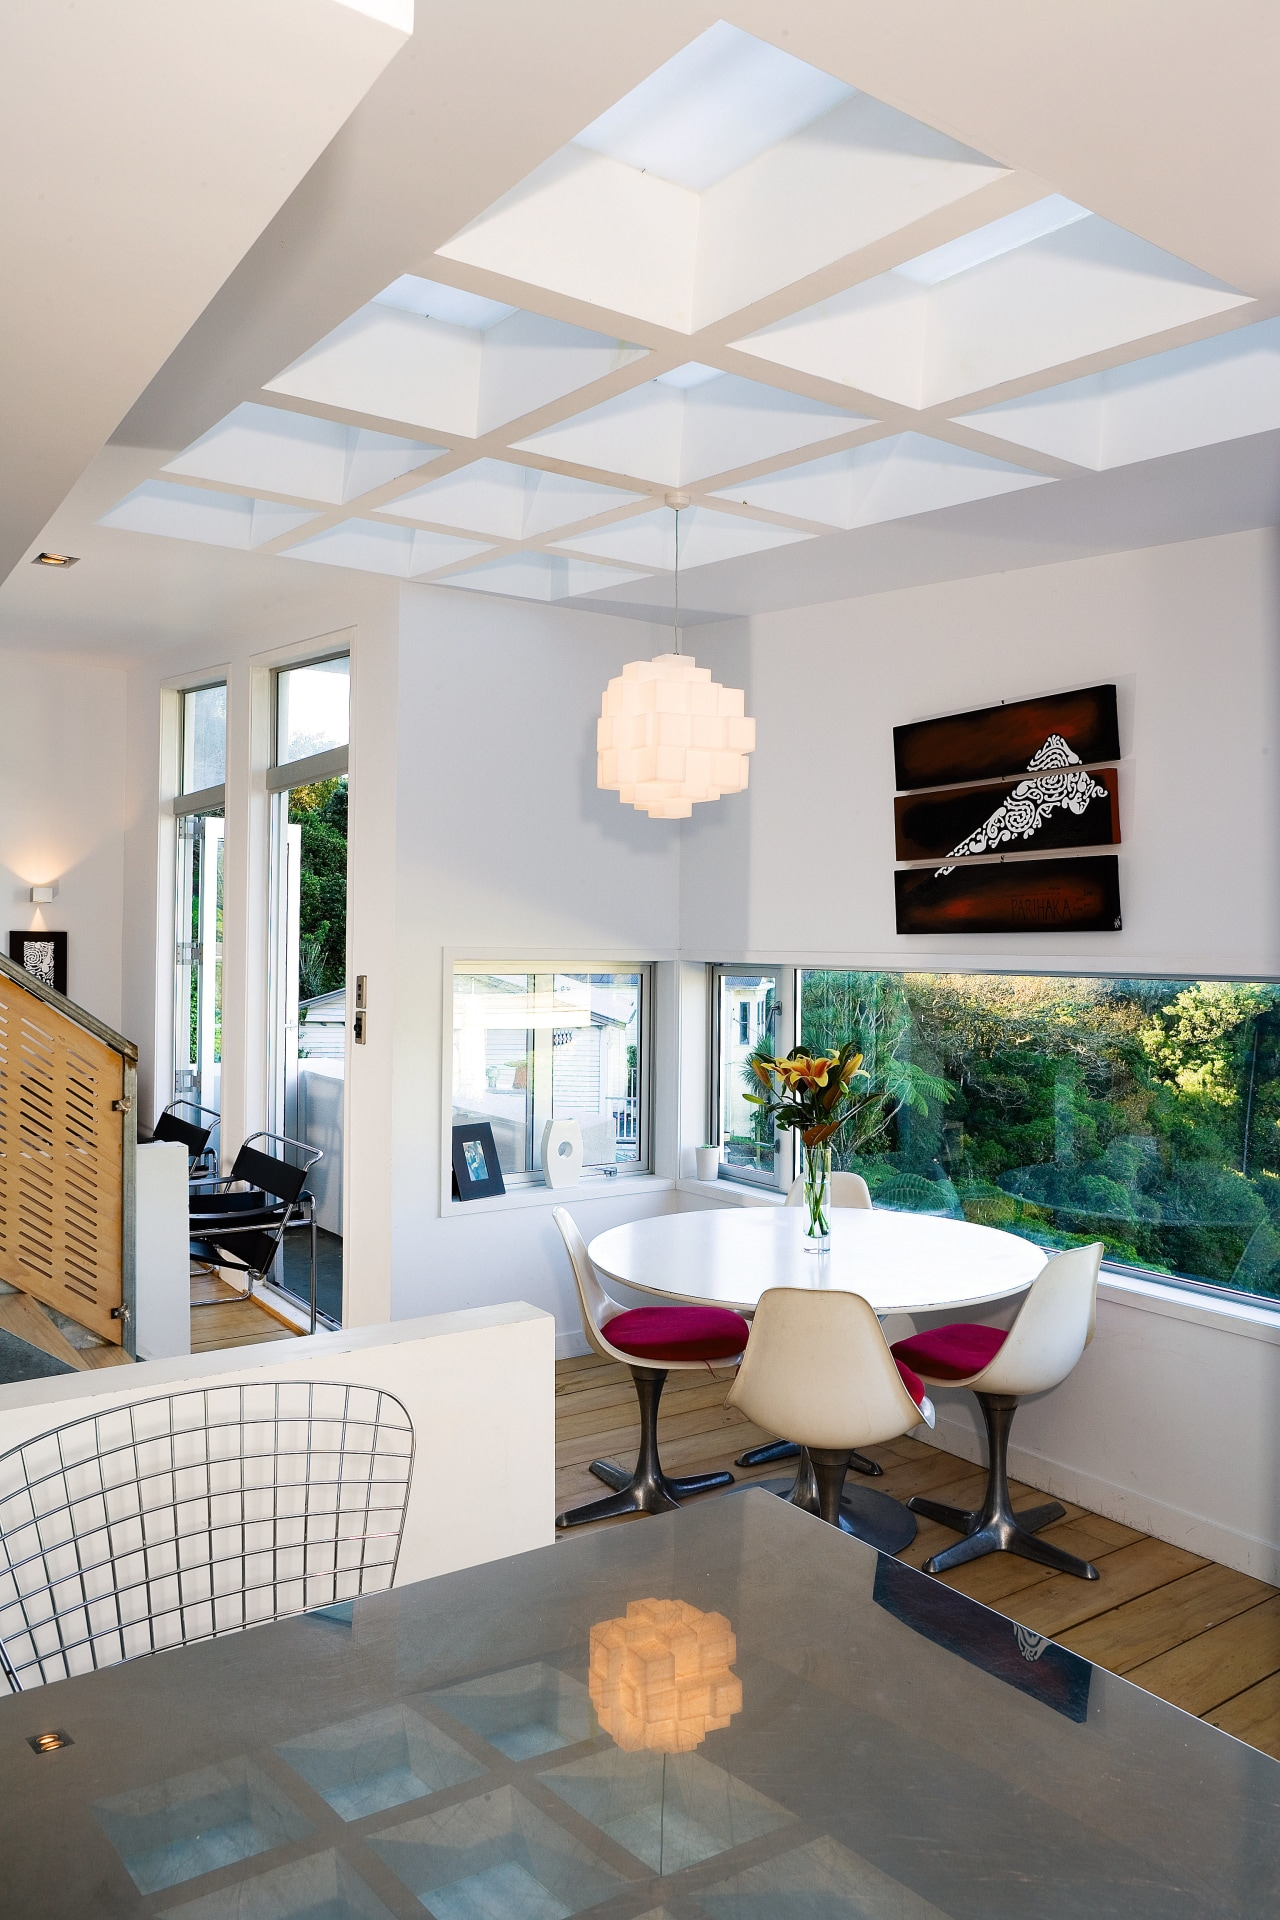 The architect chose a horizontail window strip in architecture, ceiling, daylighting, floor, flooring, home, interior design, living room, room, table, wall, window, white